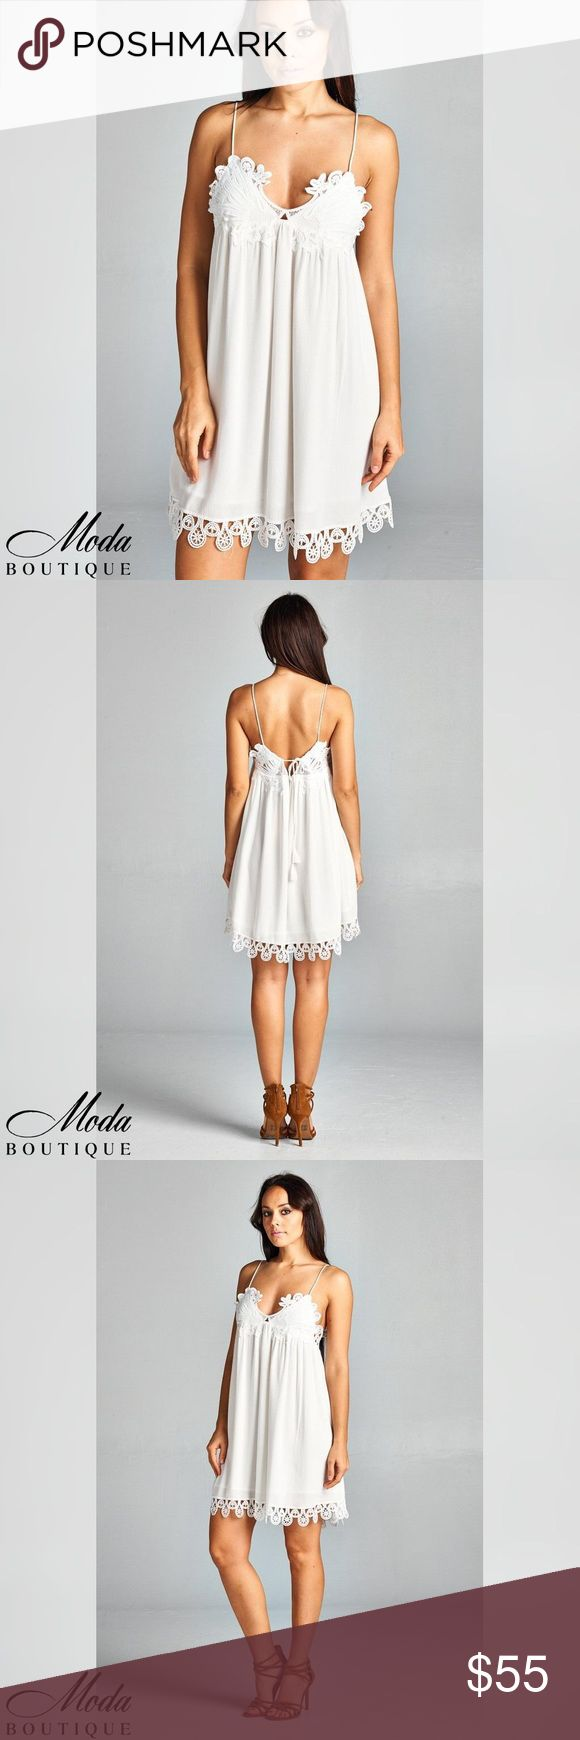 Spaghetti Strap Summer Sun Mini Dress Spaghetti Strap Summer Sun Mini Dress Color White Model wearing a small Material100% Rayon Notes: These are quality boutique garments, not something off a Chinese website! They are the same pieces that are resold in popular stores like Nordstrom's, Saks Fifth, and higher end boutiques. Free People Anthropologie Urban Outfitters Madewell Modabyboutique Moda Boutique Moda SF SFmoda wholesale @wholesales boutique clothing A.Peach Dresses Mini